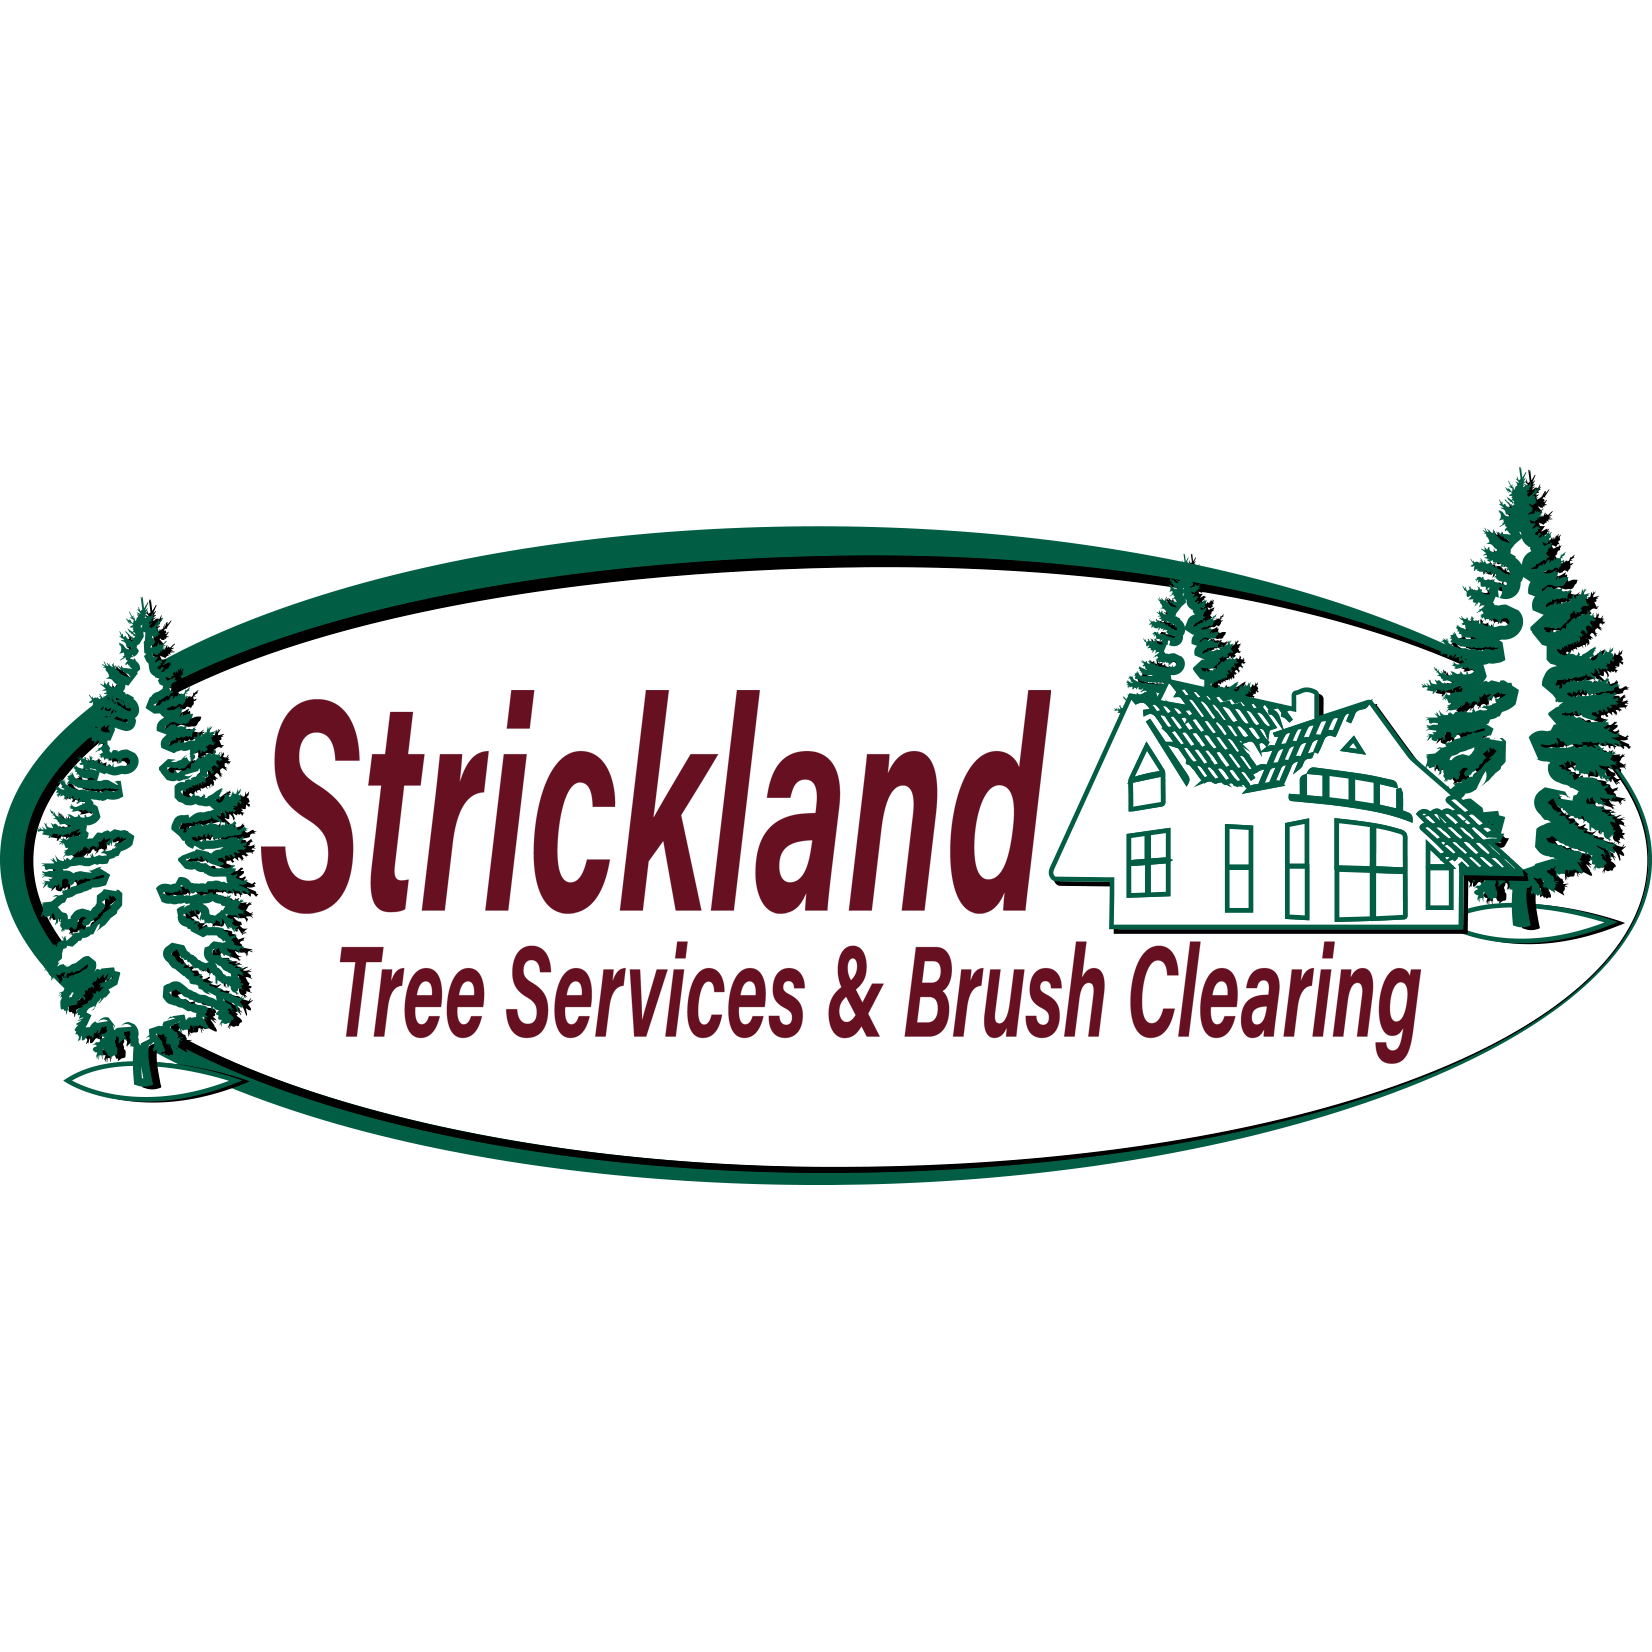 Strickland Tree Services & Brush Clearing - Sonora, CA 95370 - (209)213-9040 | ShowMeLocal.com